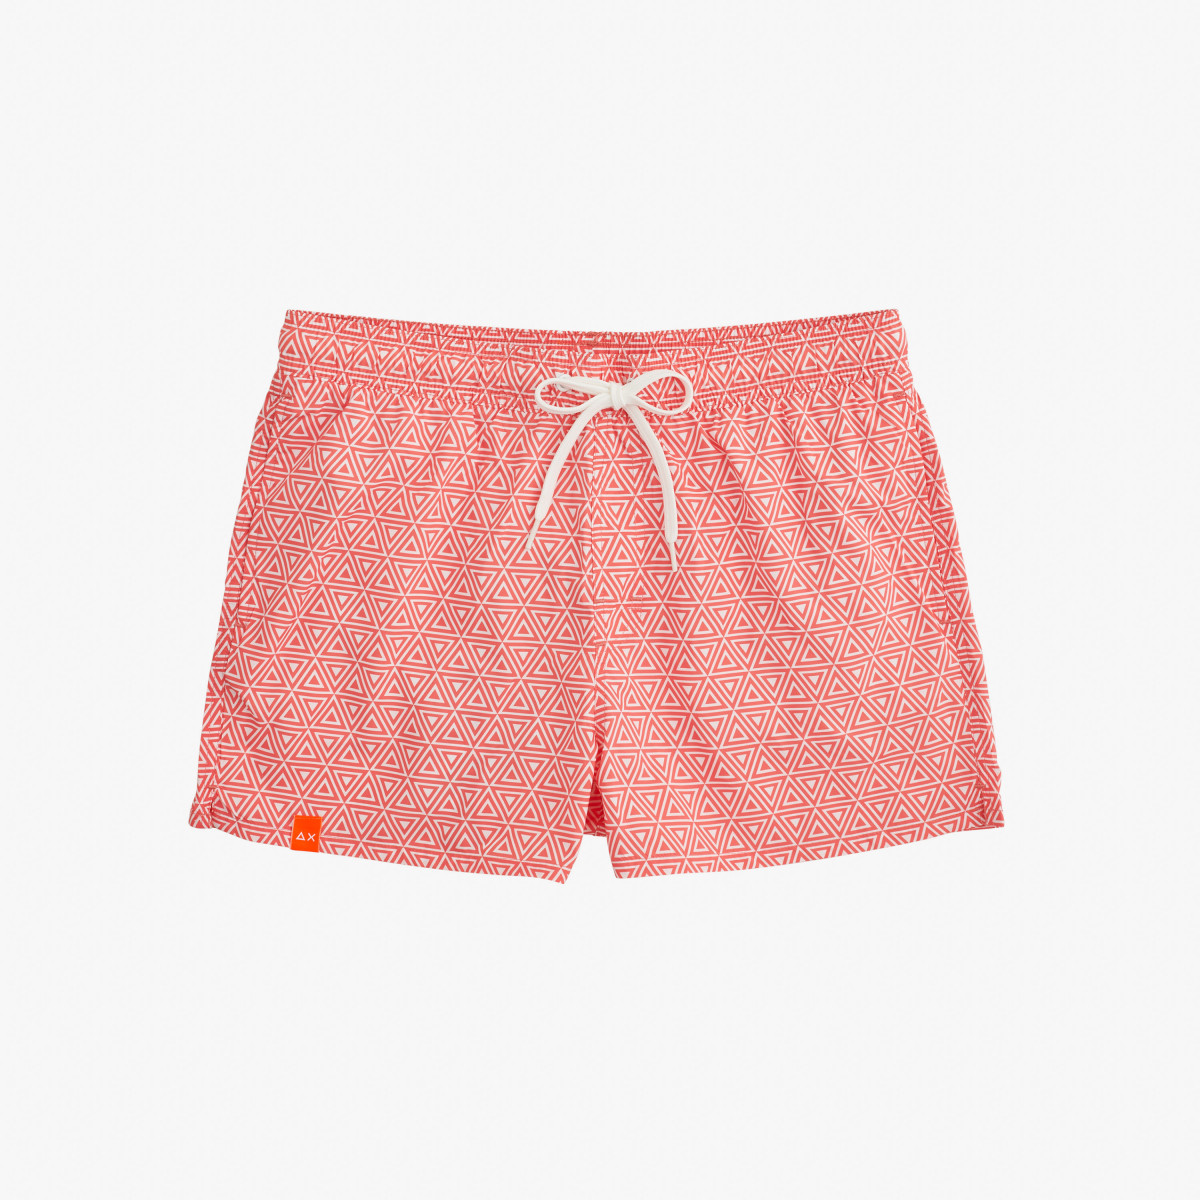 SWIM PANT FANCY MICRO PATTERN CORAL/WHITE